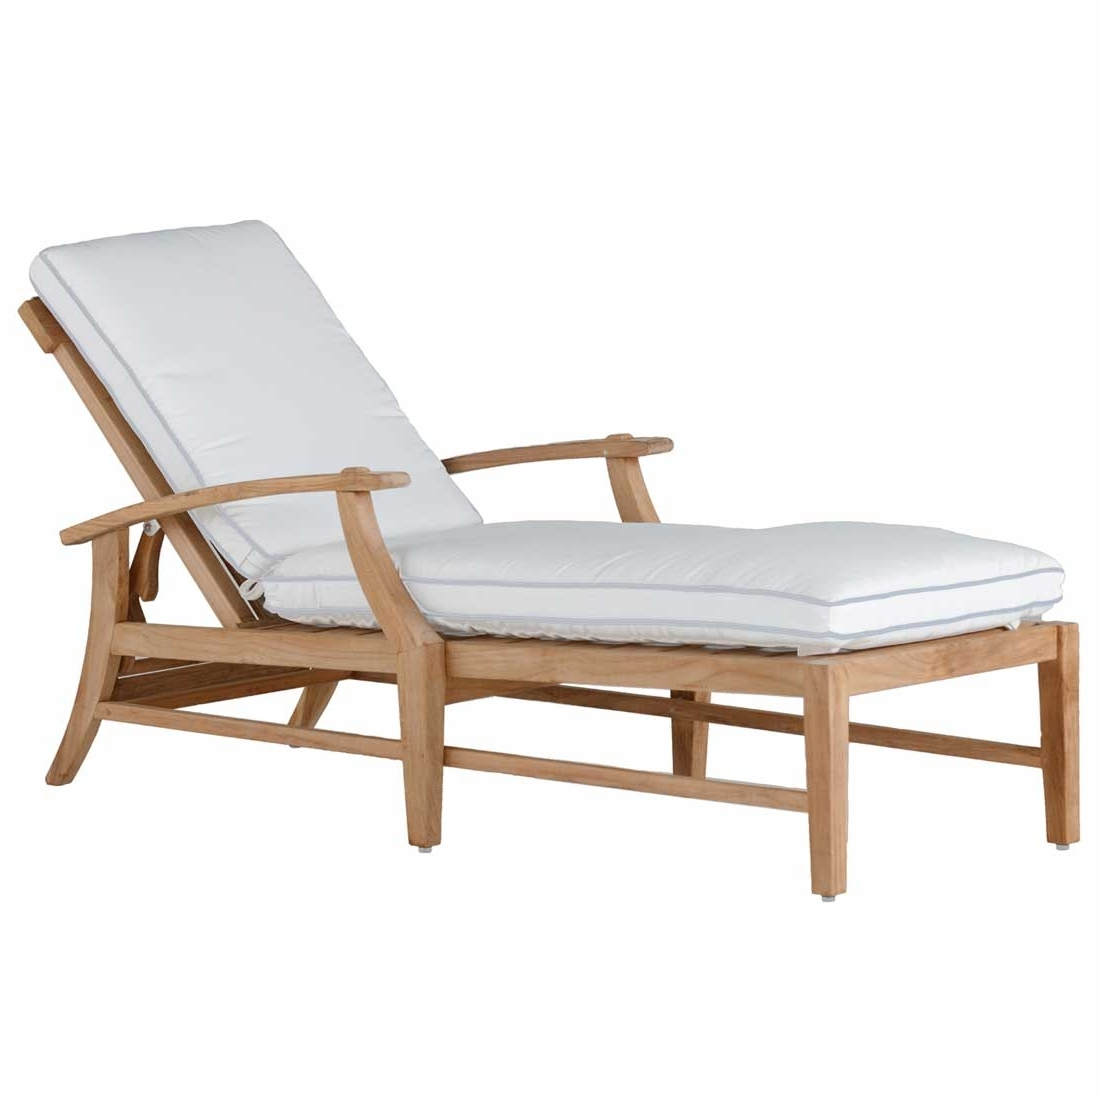 Teak Chaise Lounges In Favorite Croquet Teak Chaise – Summer Classics (View 4 of 15)